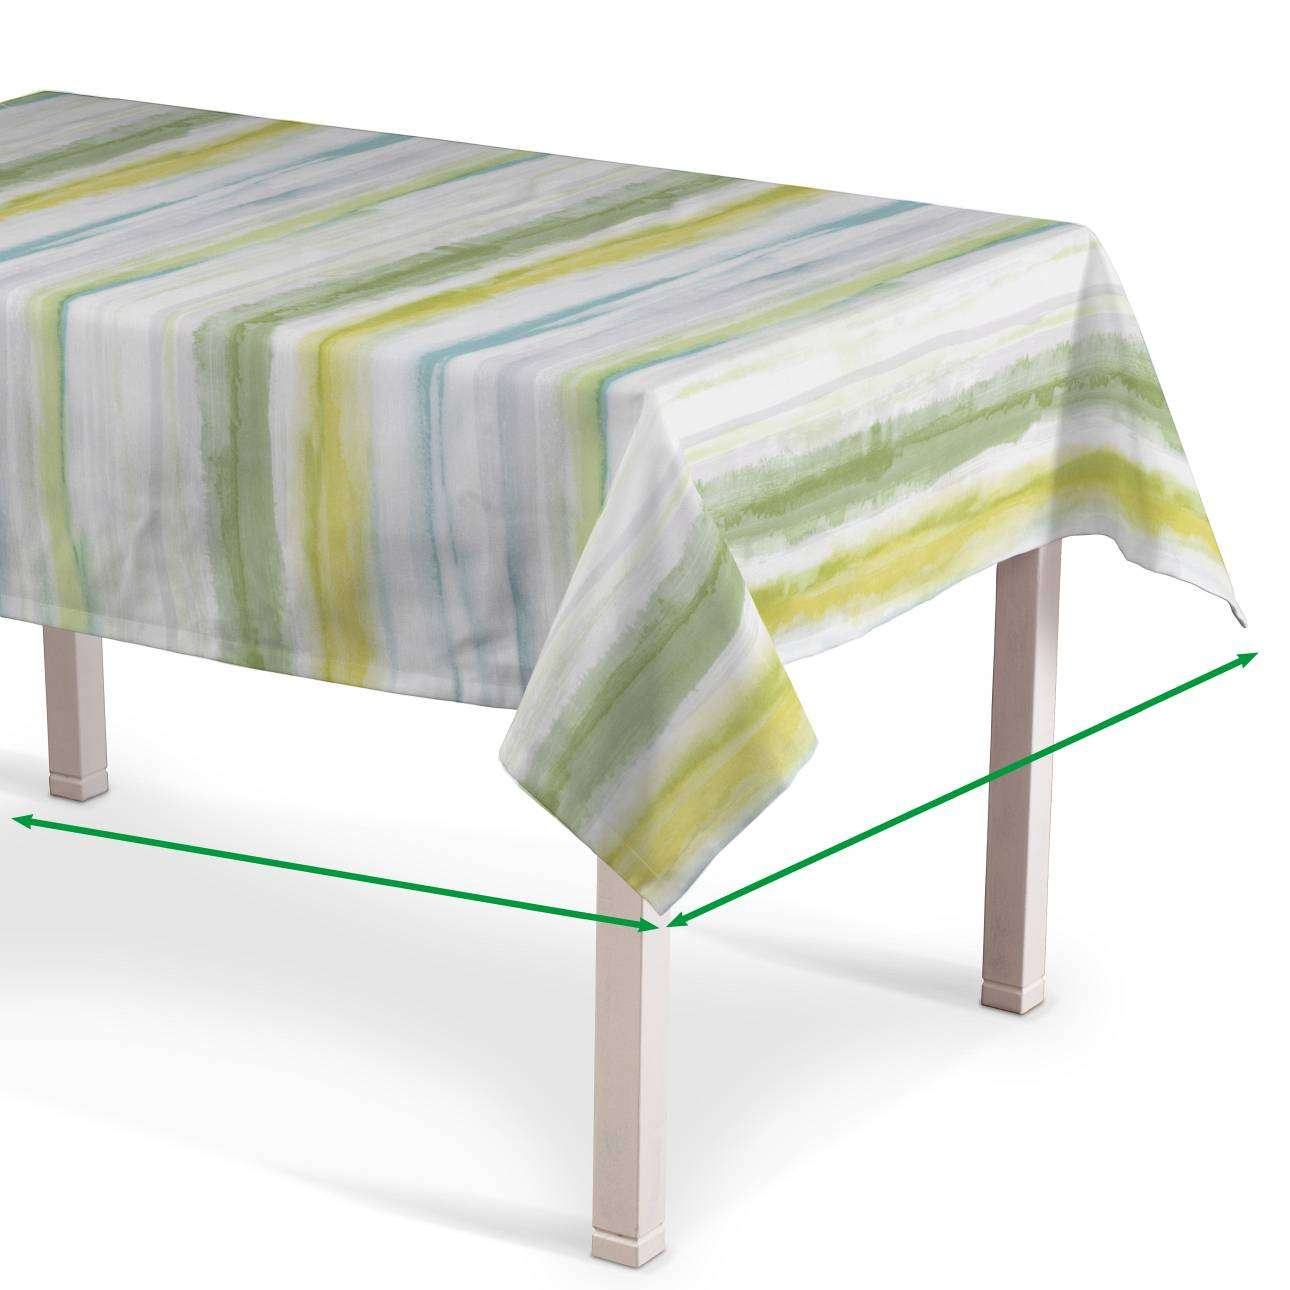 Rectangular tablecloth in collection Aquarelle, fabric: 140-68